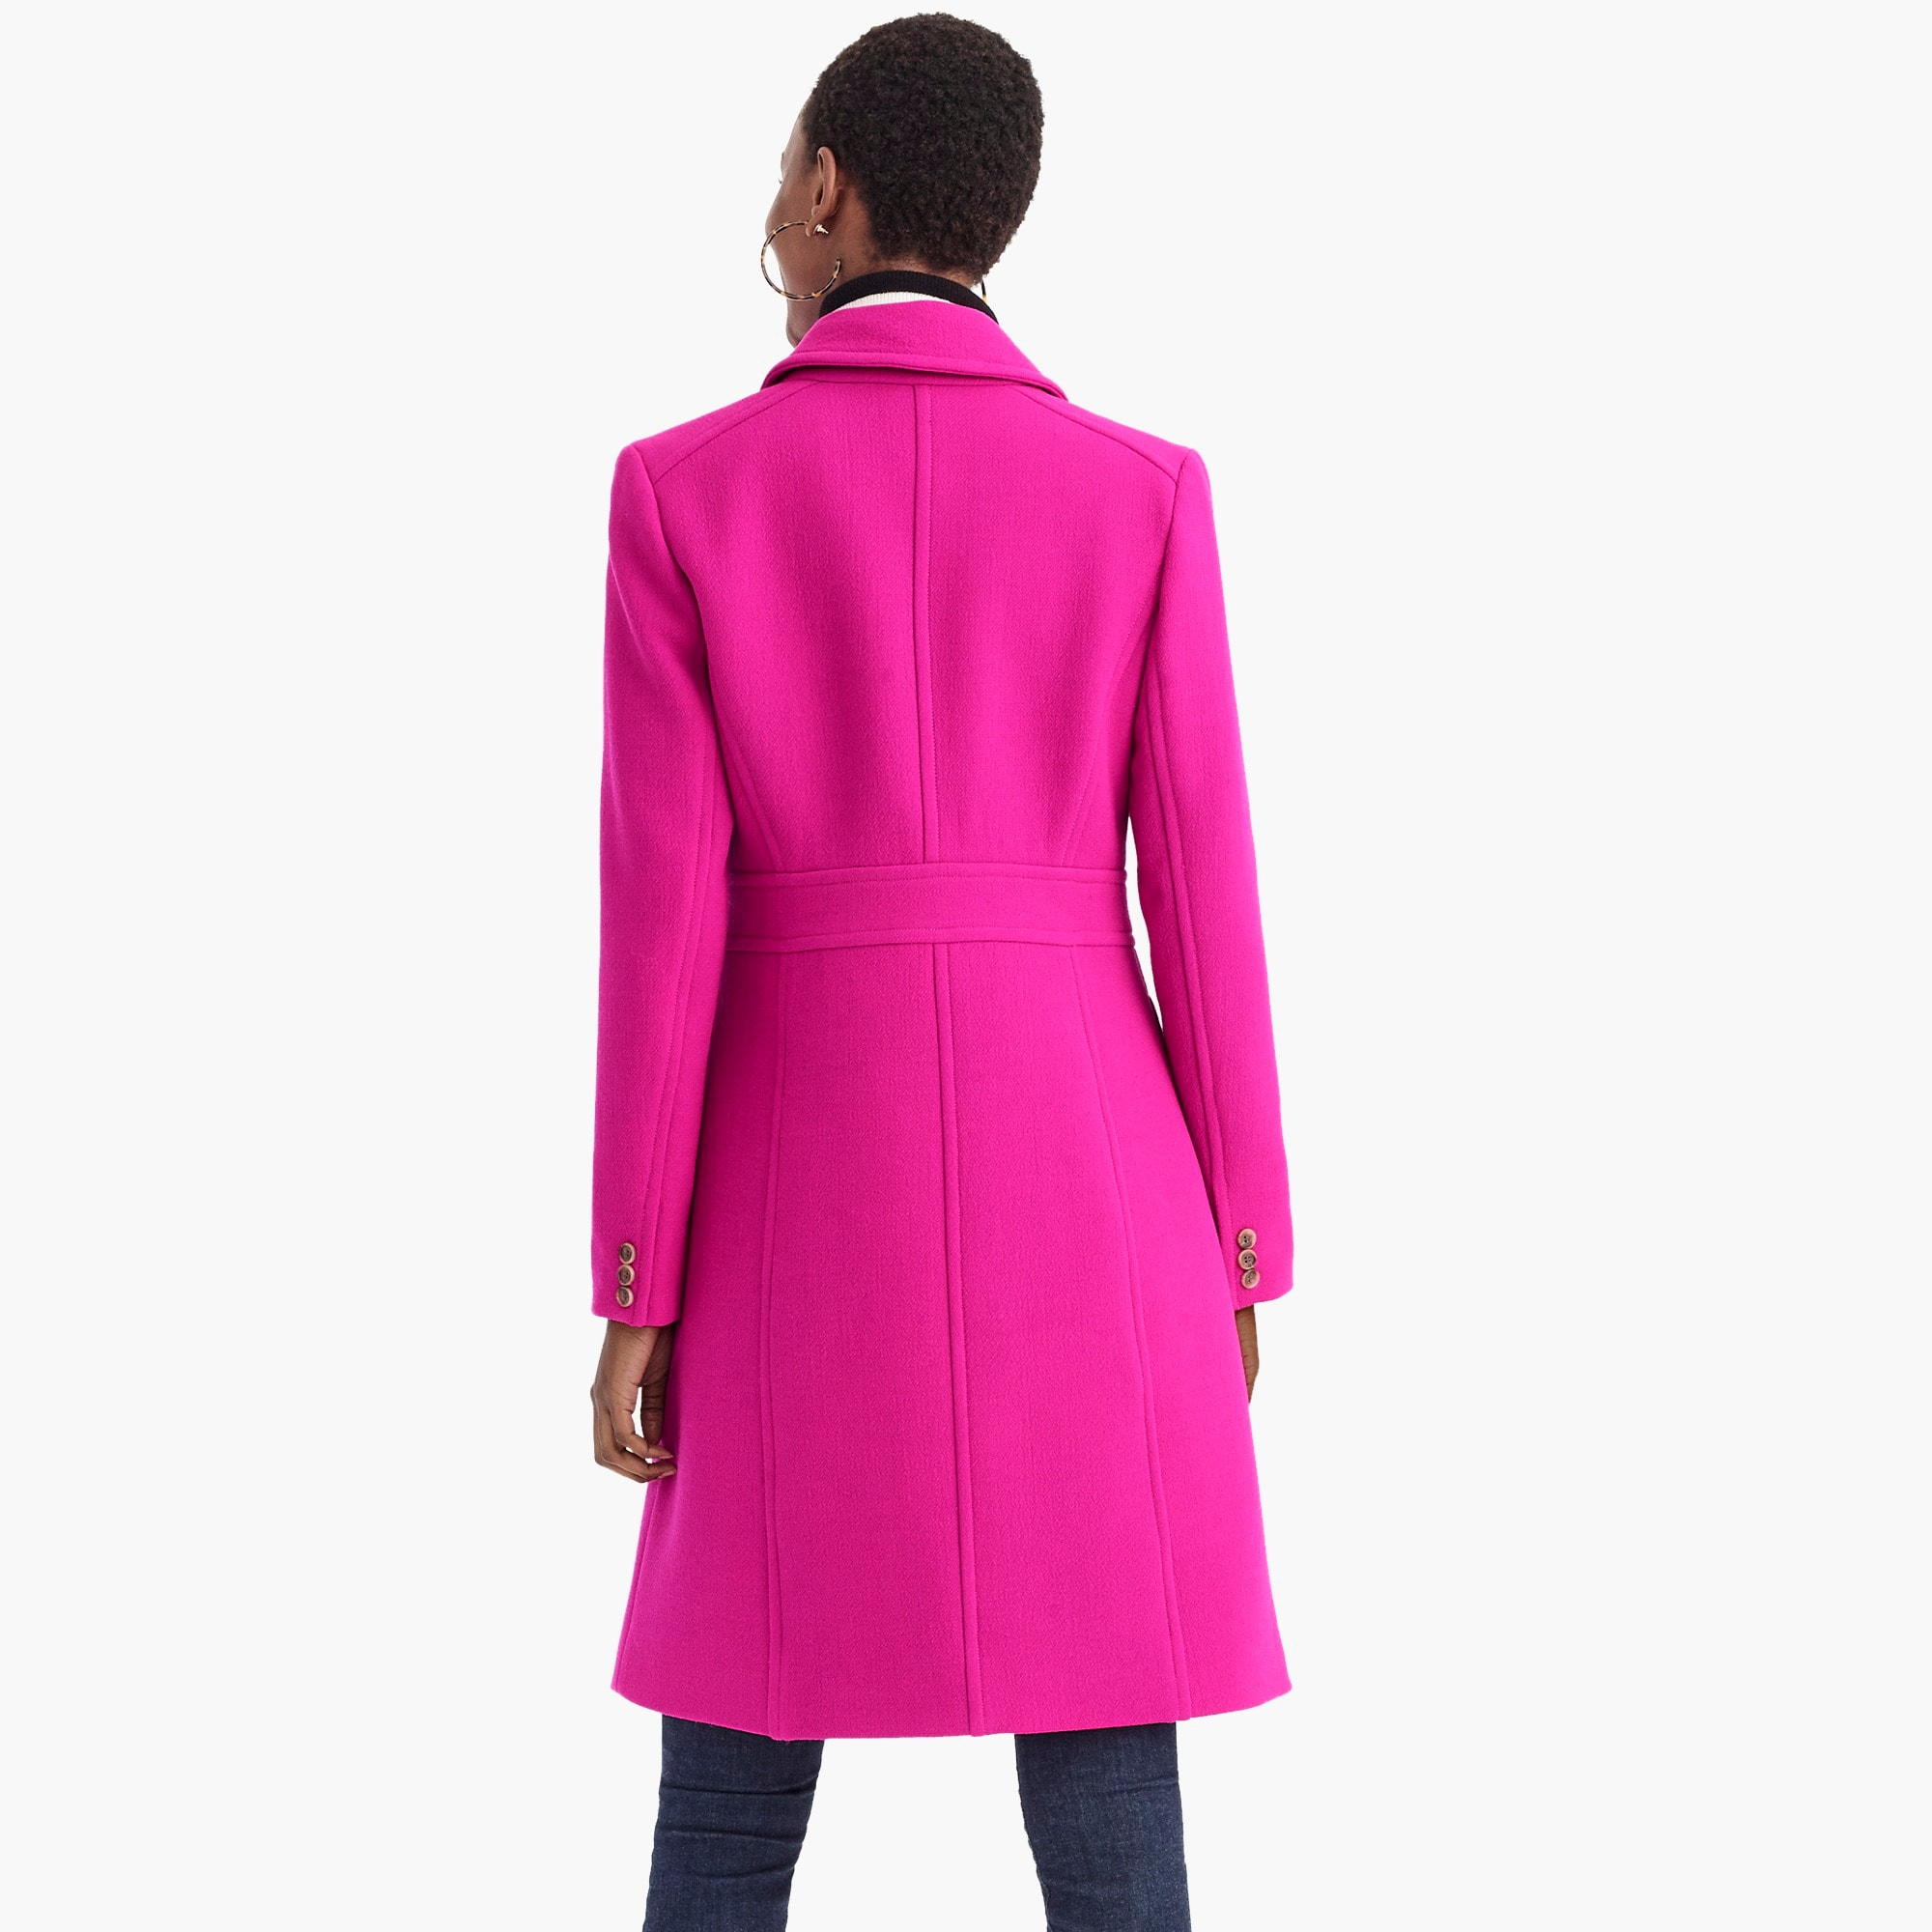 Image 5 for Petite Italian double-cloth wool lady day coat with Thinsulate®